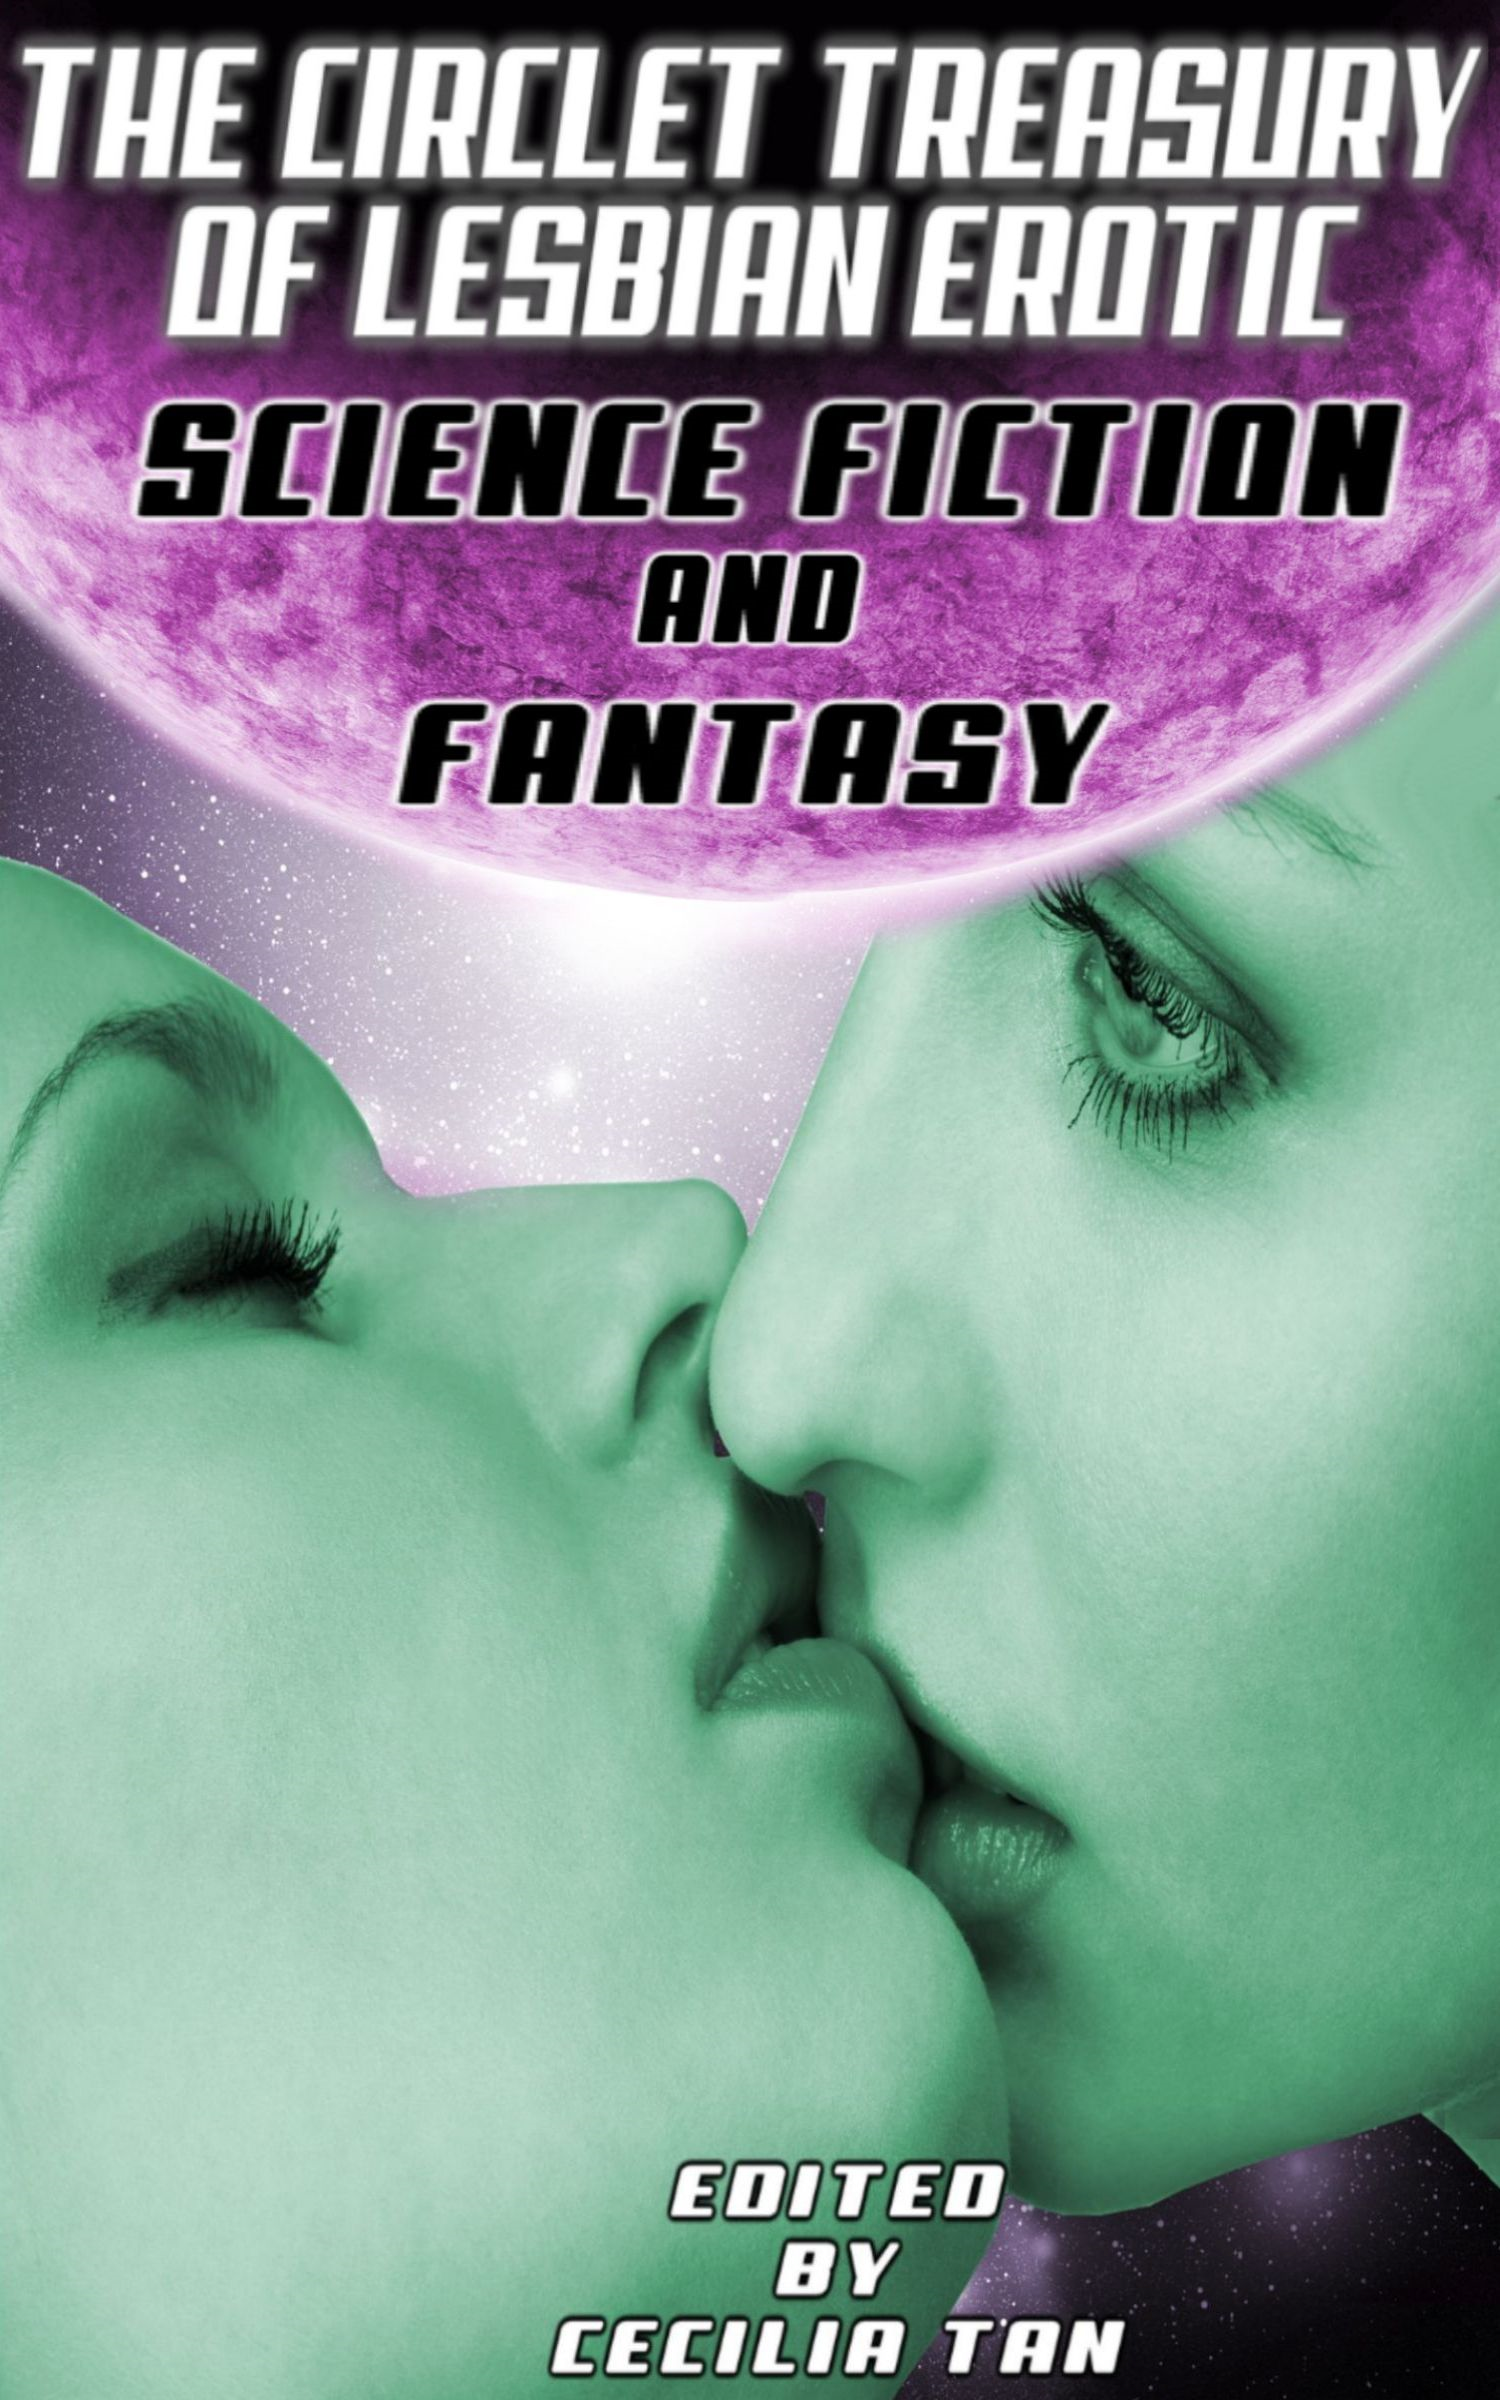 THE CIRCLET TREASURY OF LESBIAN EROTIC SCIENCE FICITON AND FANTASY By: Cecilia Tan